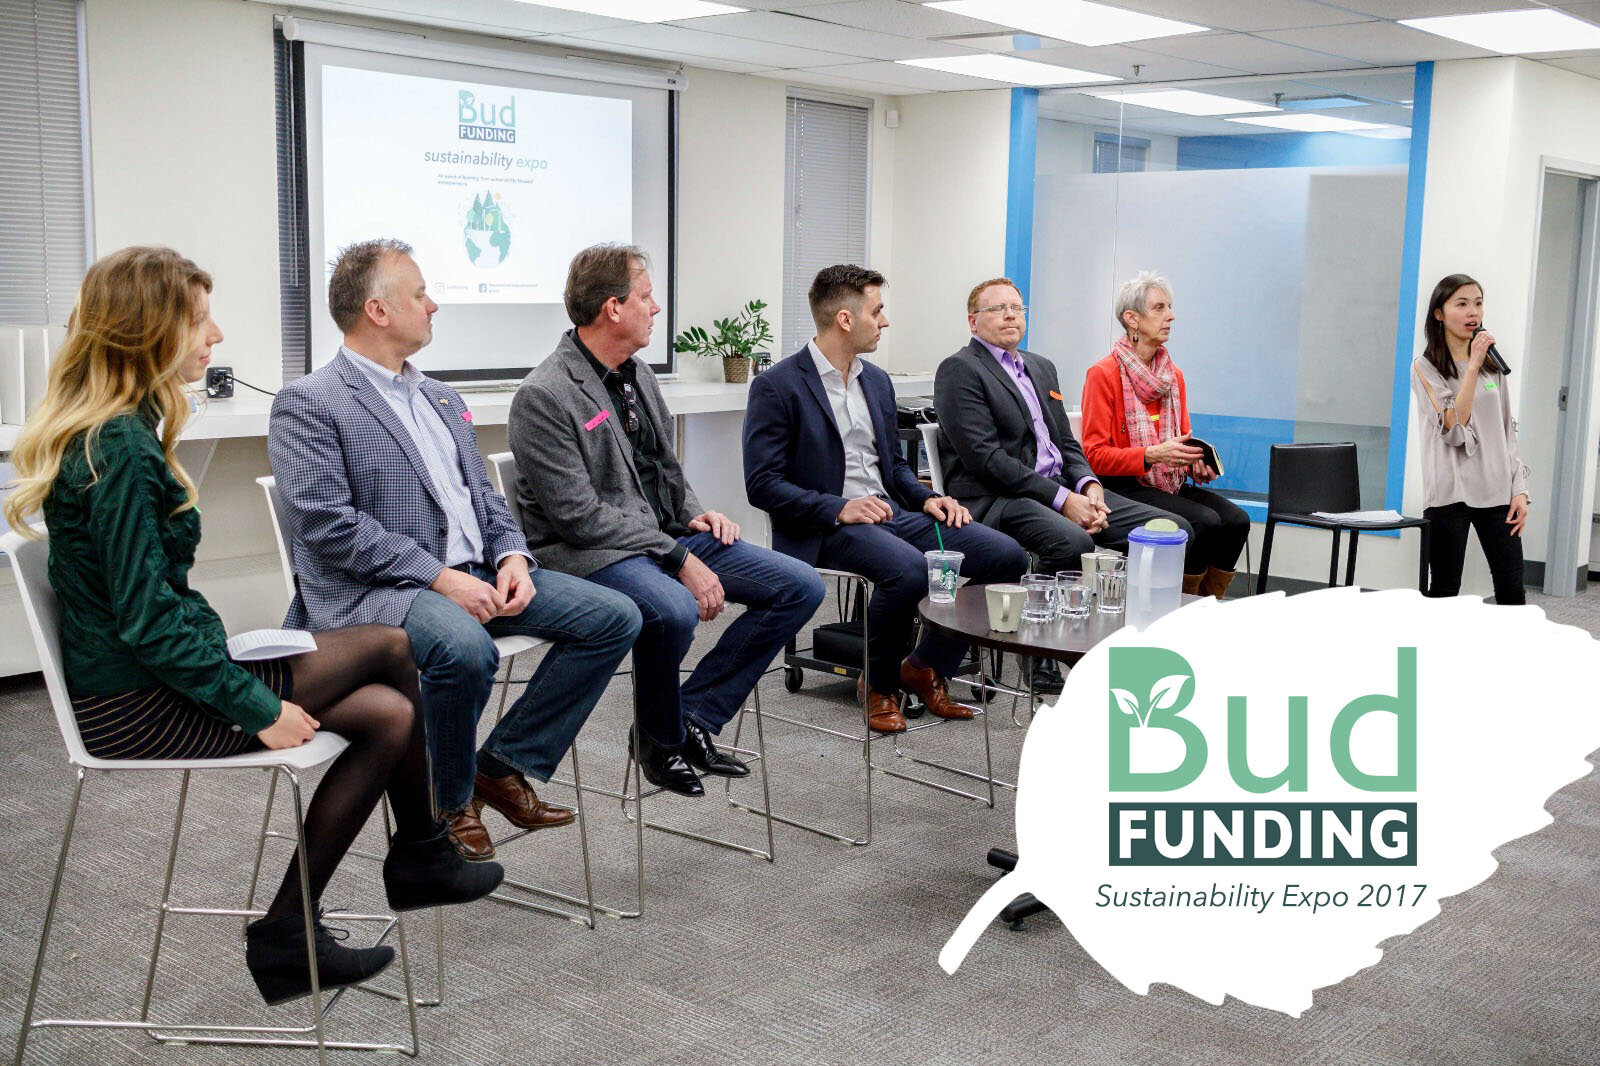 From left: Founder of Budfunding: Kristin Skelton, President & CEO of SolAgra: Darren Bruins, Co-founder & Senior Director of: SolAgra Kurt Vouri, President & CEO of InOrbis: Rosario Fortugno, Founder of Ventures Green: Darren Anderson, Professor of Sustainable Energy Development Capstone Research: Irene Herremans, Past Co-founder of Budfunding: Emma Yang